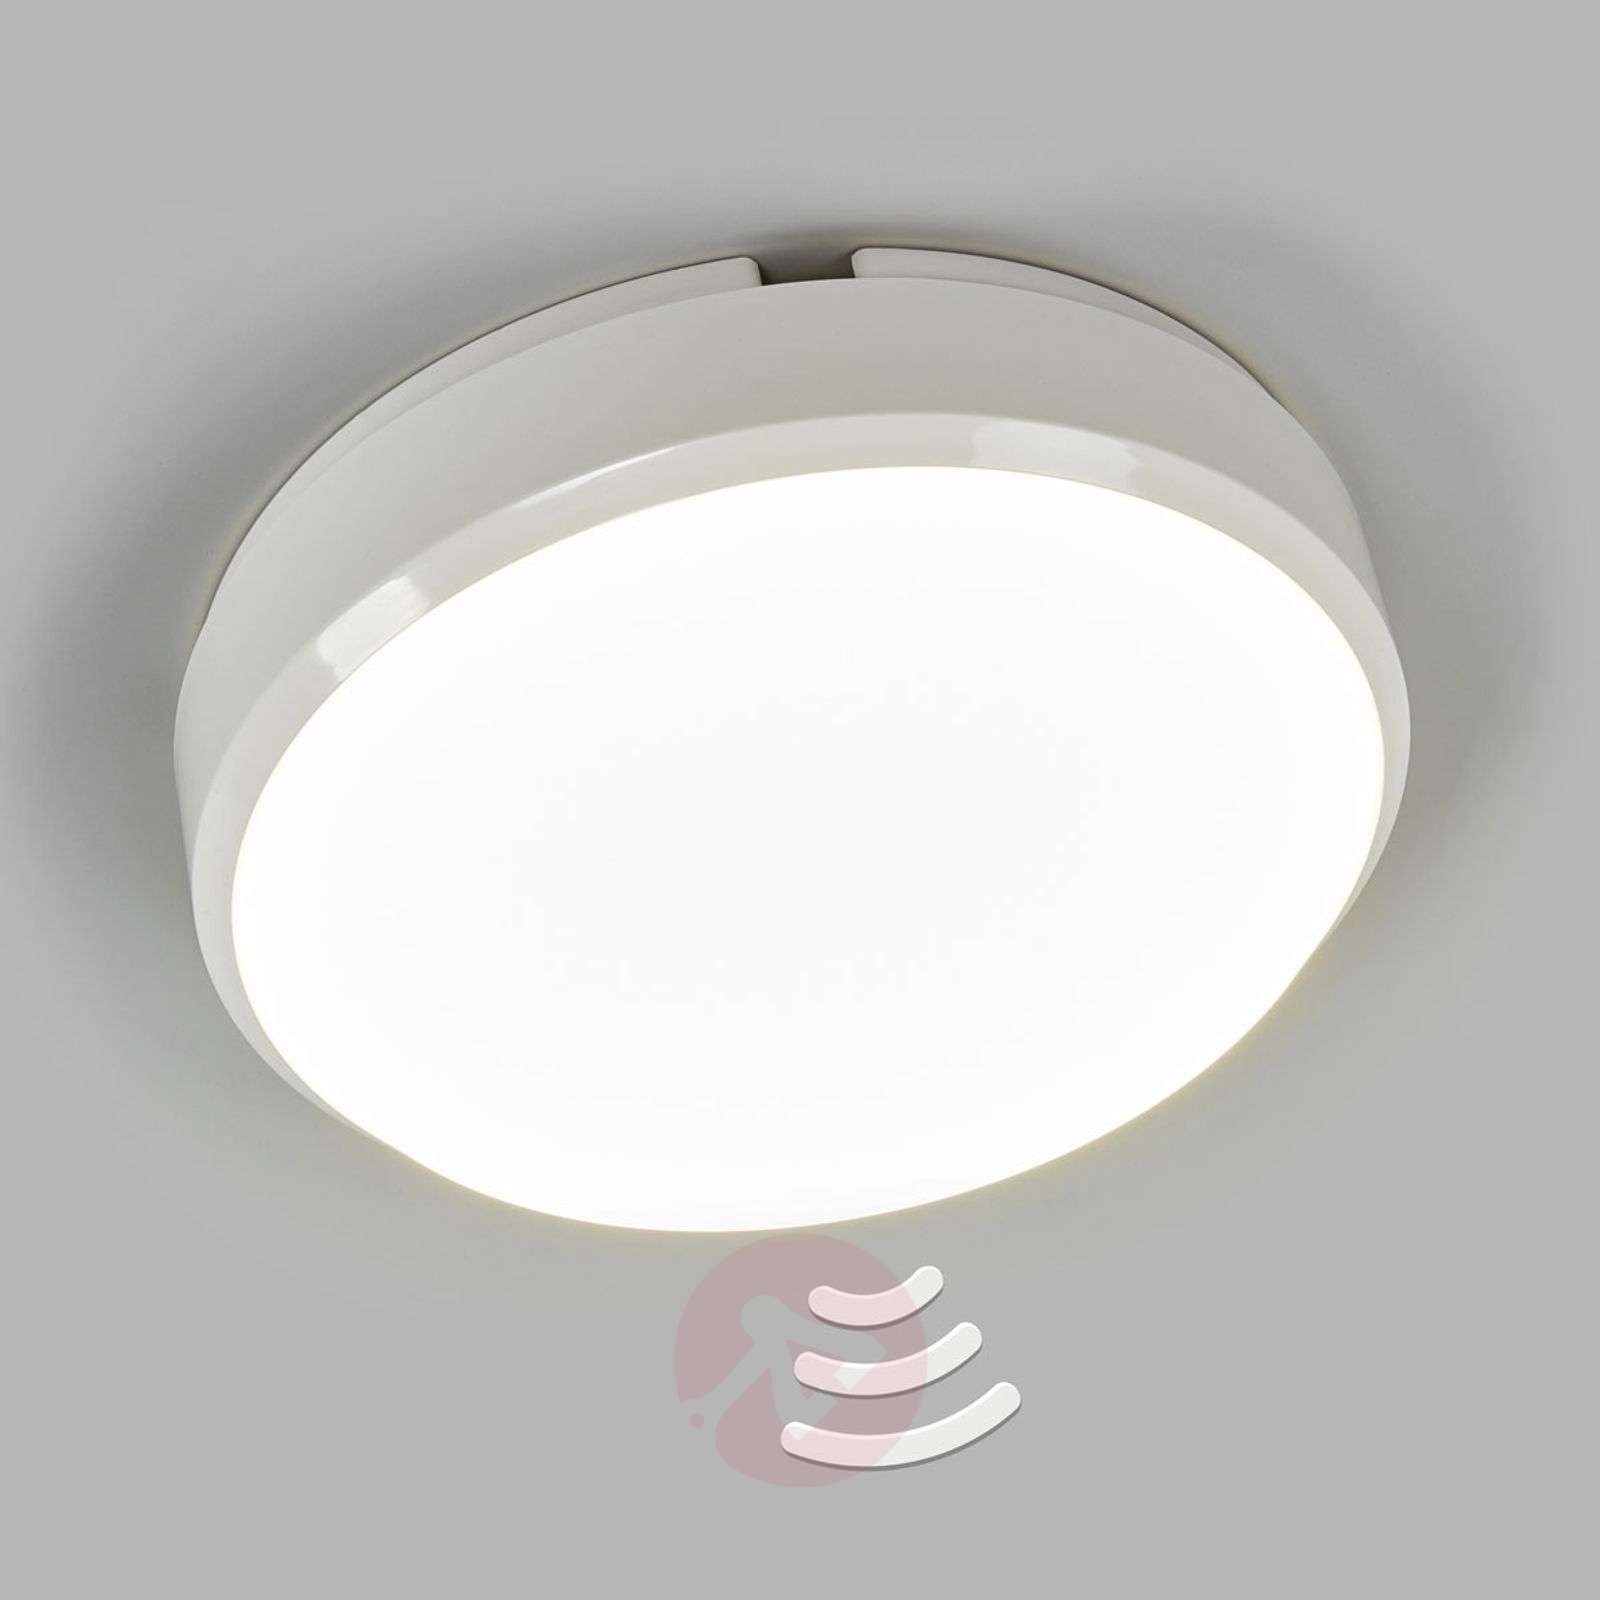 Ceiling lights with sensor buy online lights round led ceiling light bulkhead with sensor parisarafo Choice Image